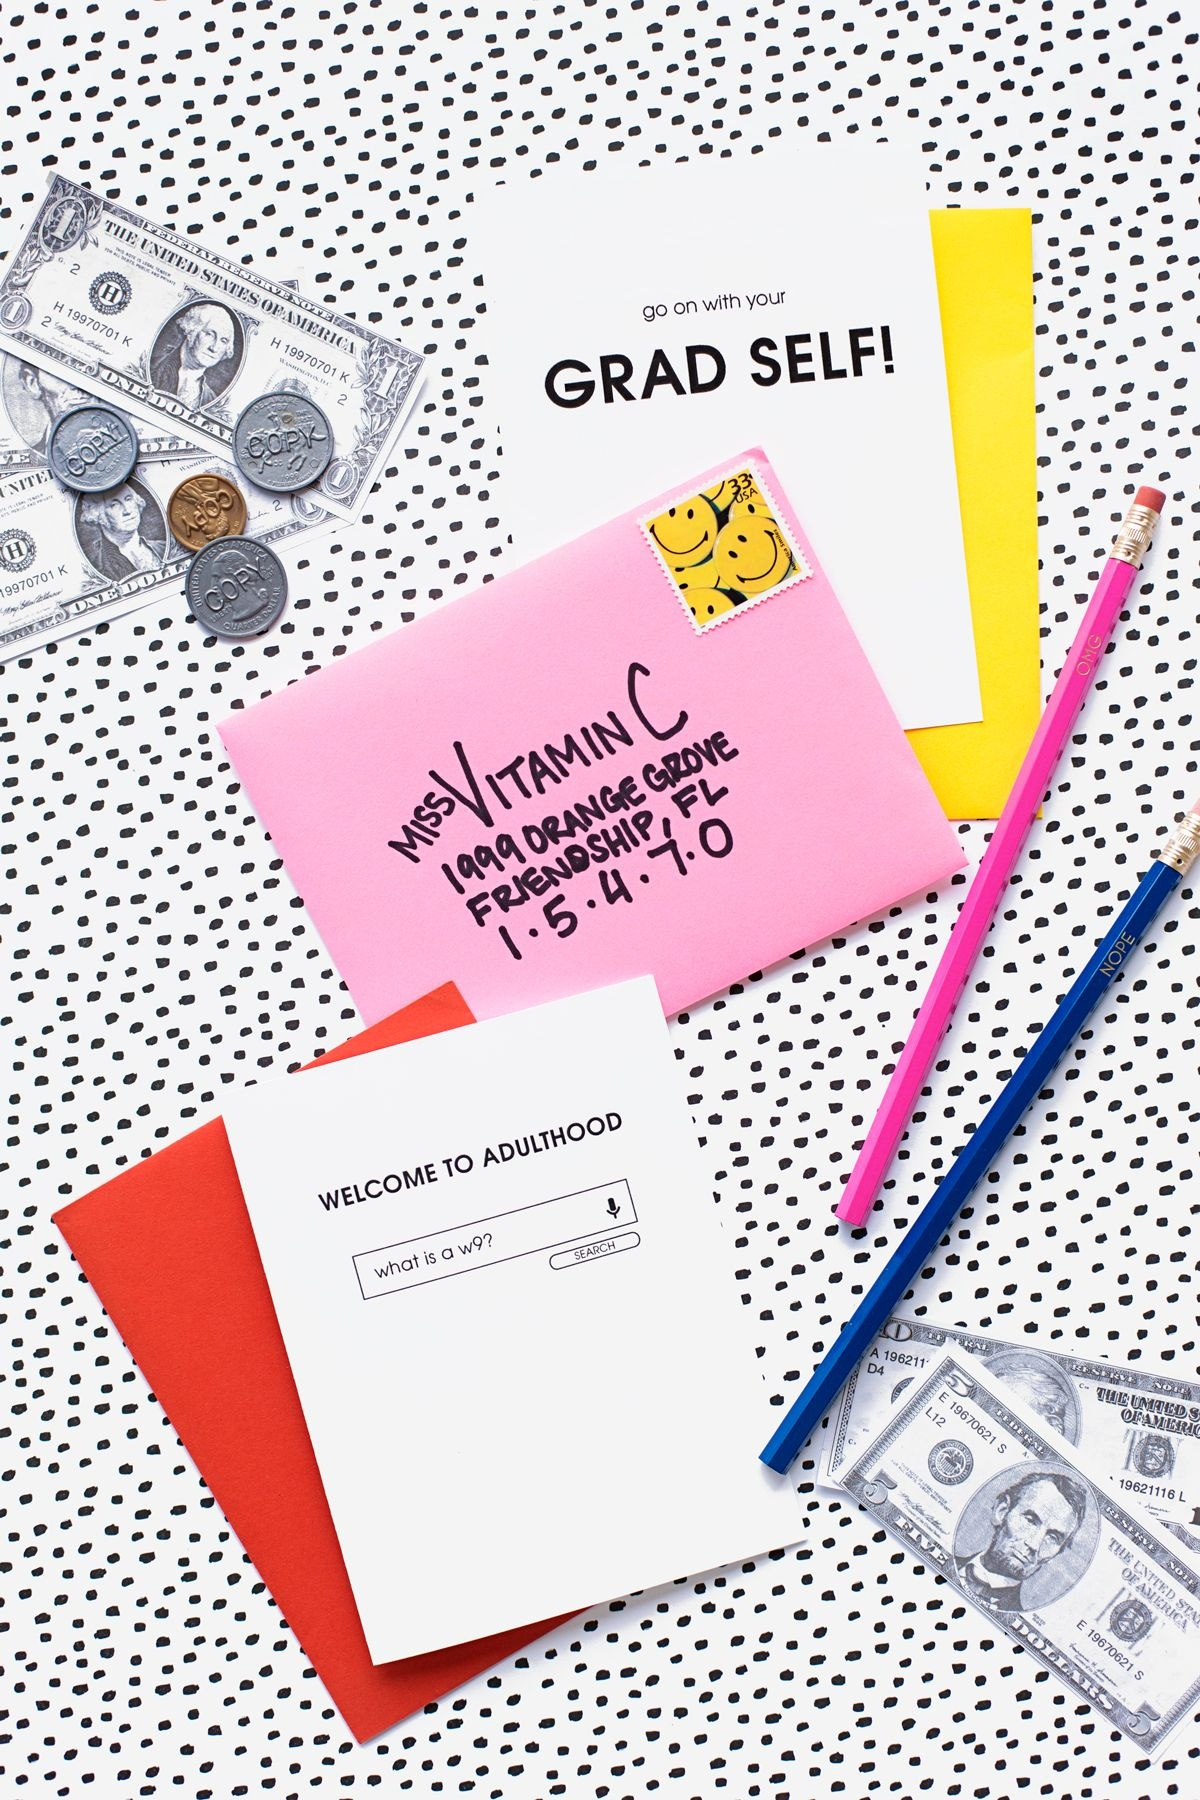 Welcome To Adulthood: Free Printable Graduation Cards | Handmade - Free Printable Graduation Cards